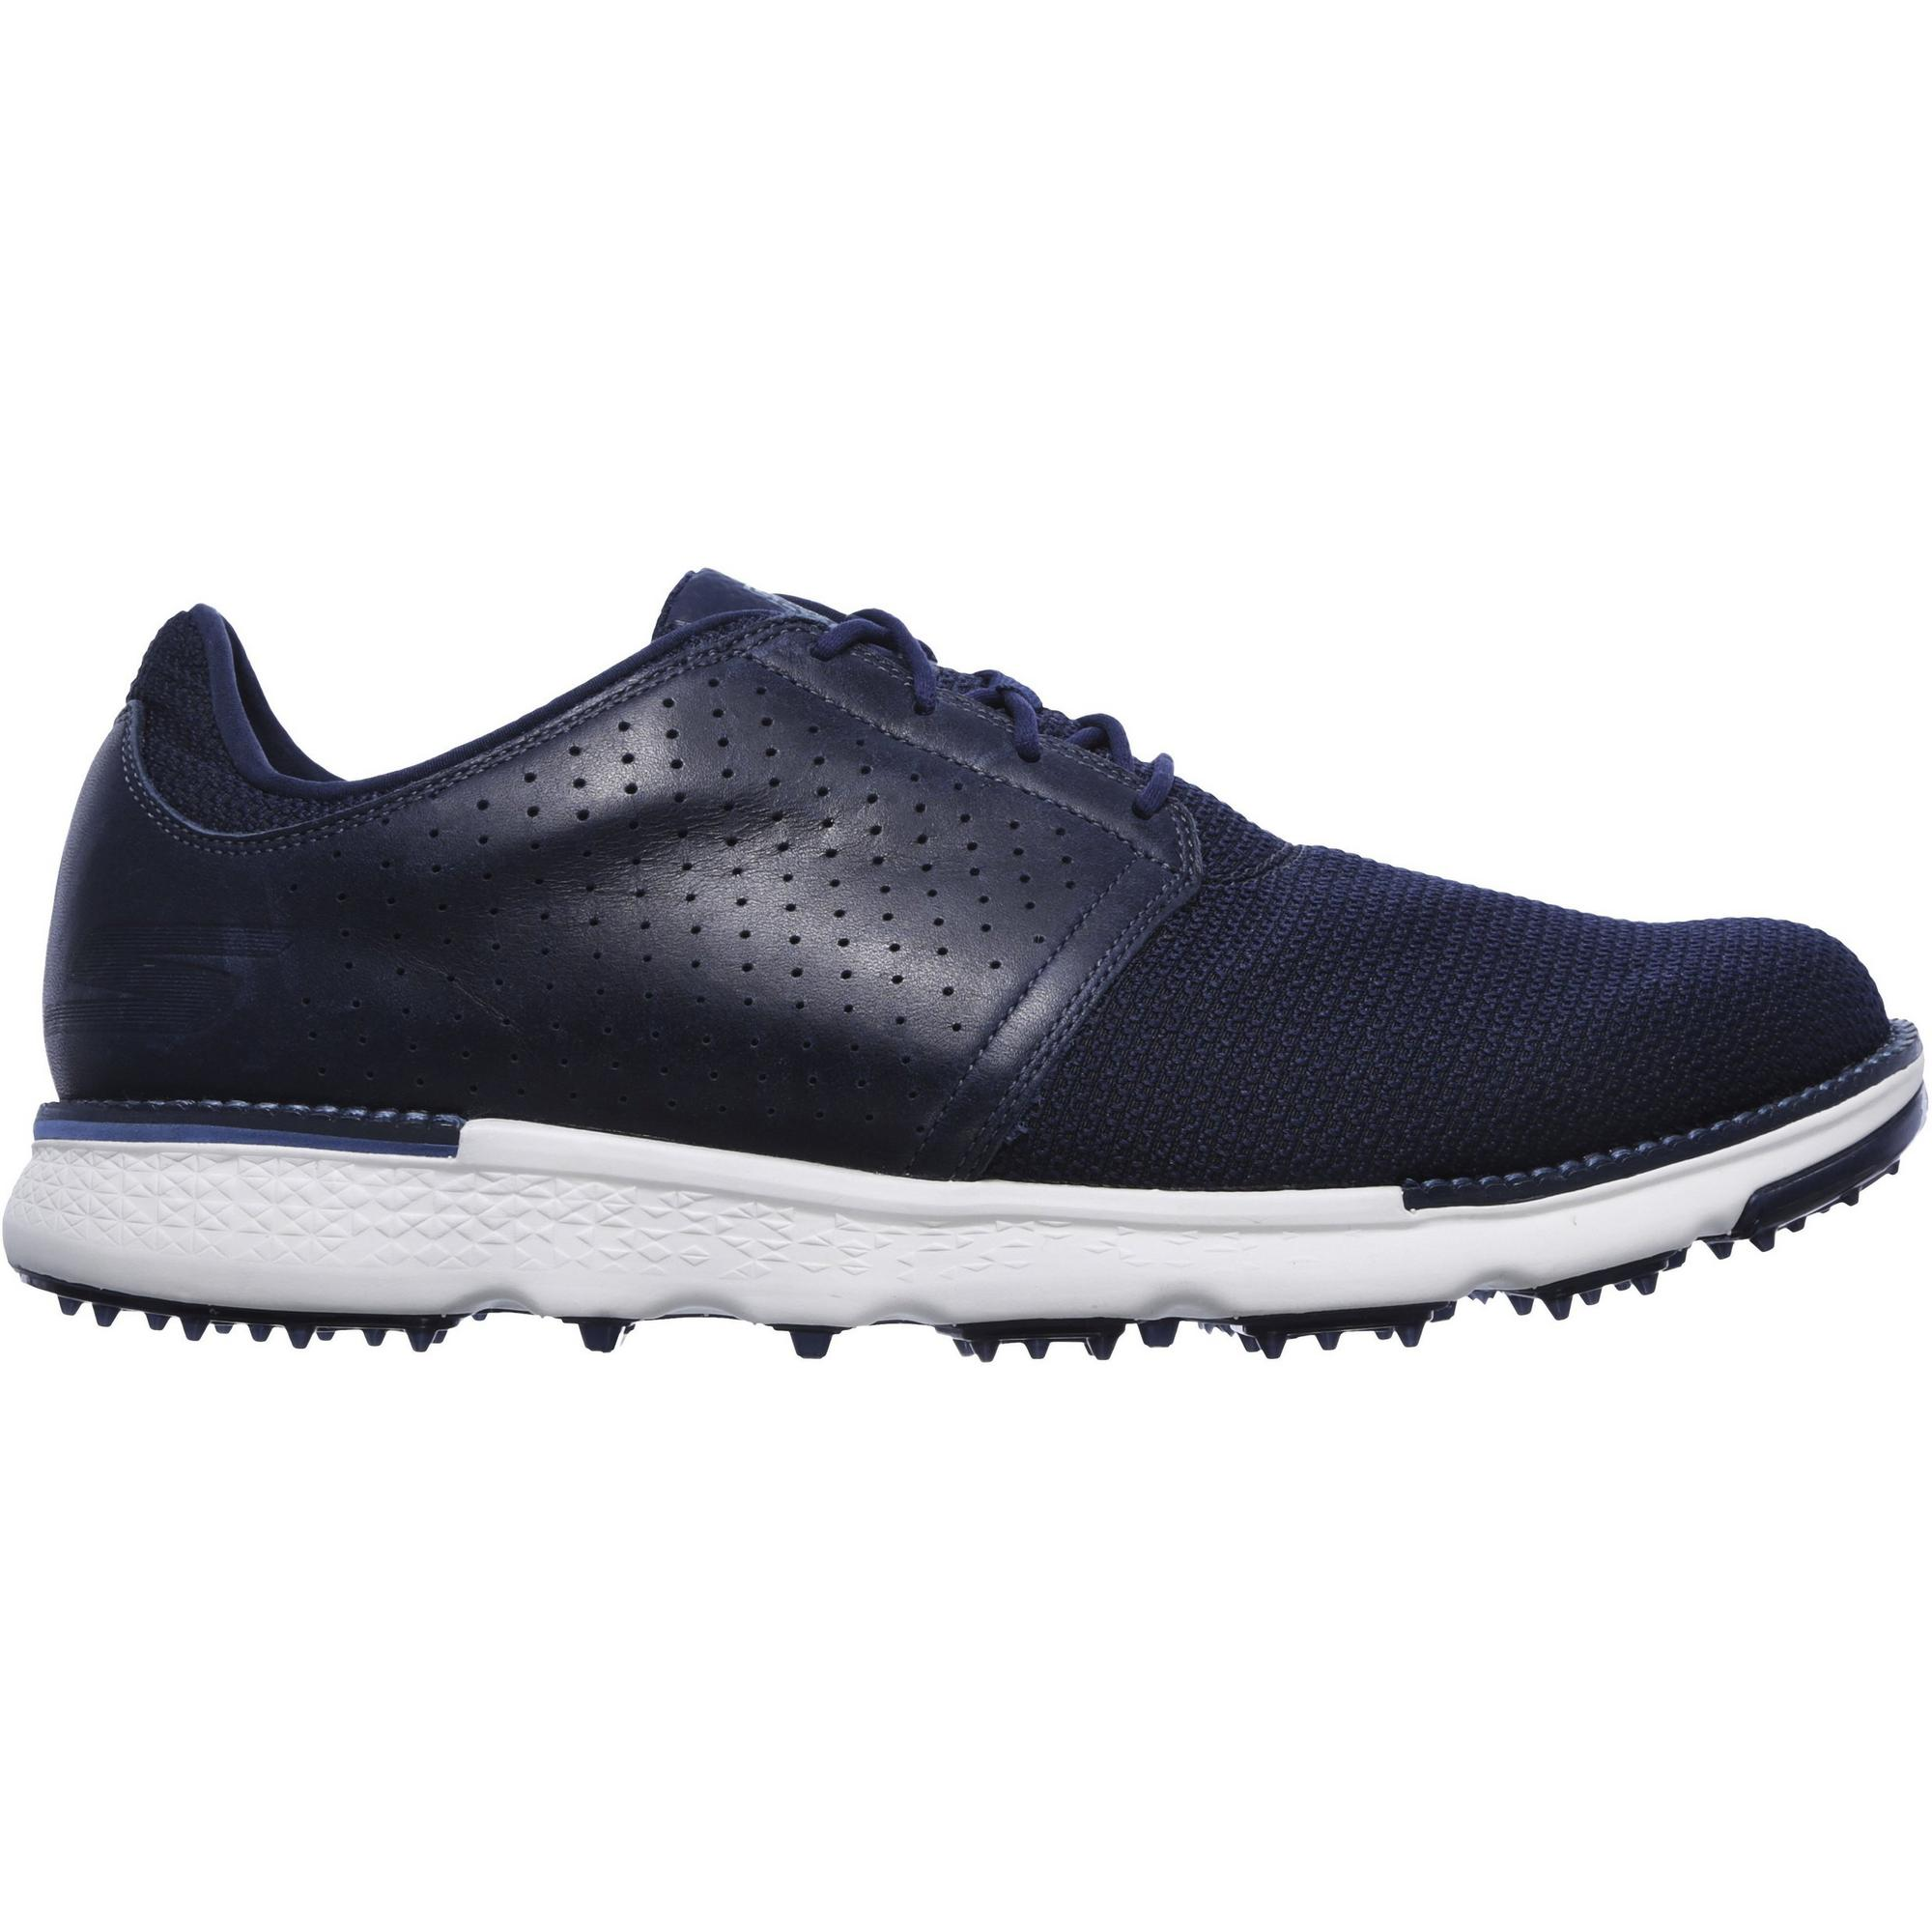 Men's Go Golf Elite V.3 Approach Relaxed Fit Spikeless Golf  Shoe - NVY